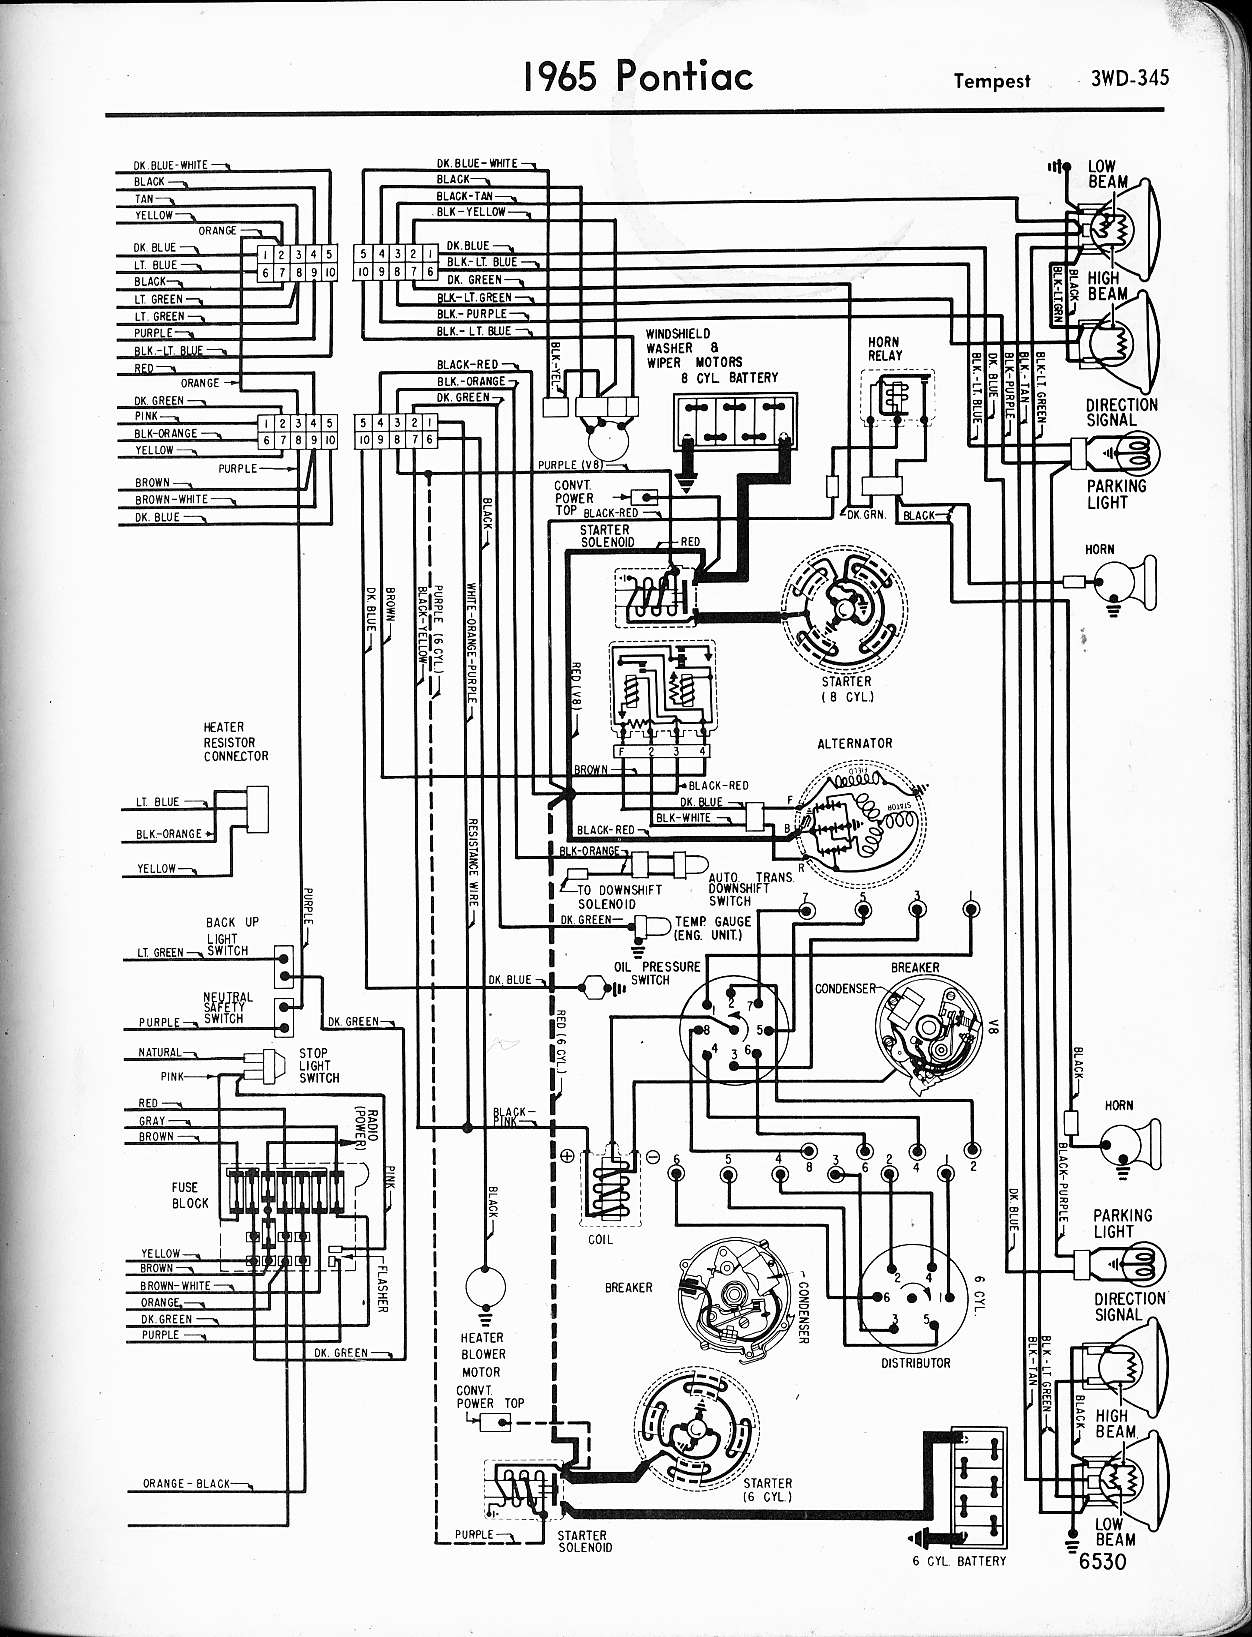 wallace racing wiring diagrams 1997 Pontiac Grand Prix Engine Diagram 1965 tempest, right page Pontiac Grand Prix Engine Diagram